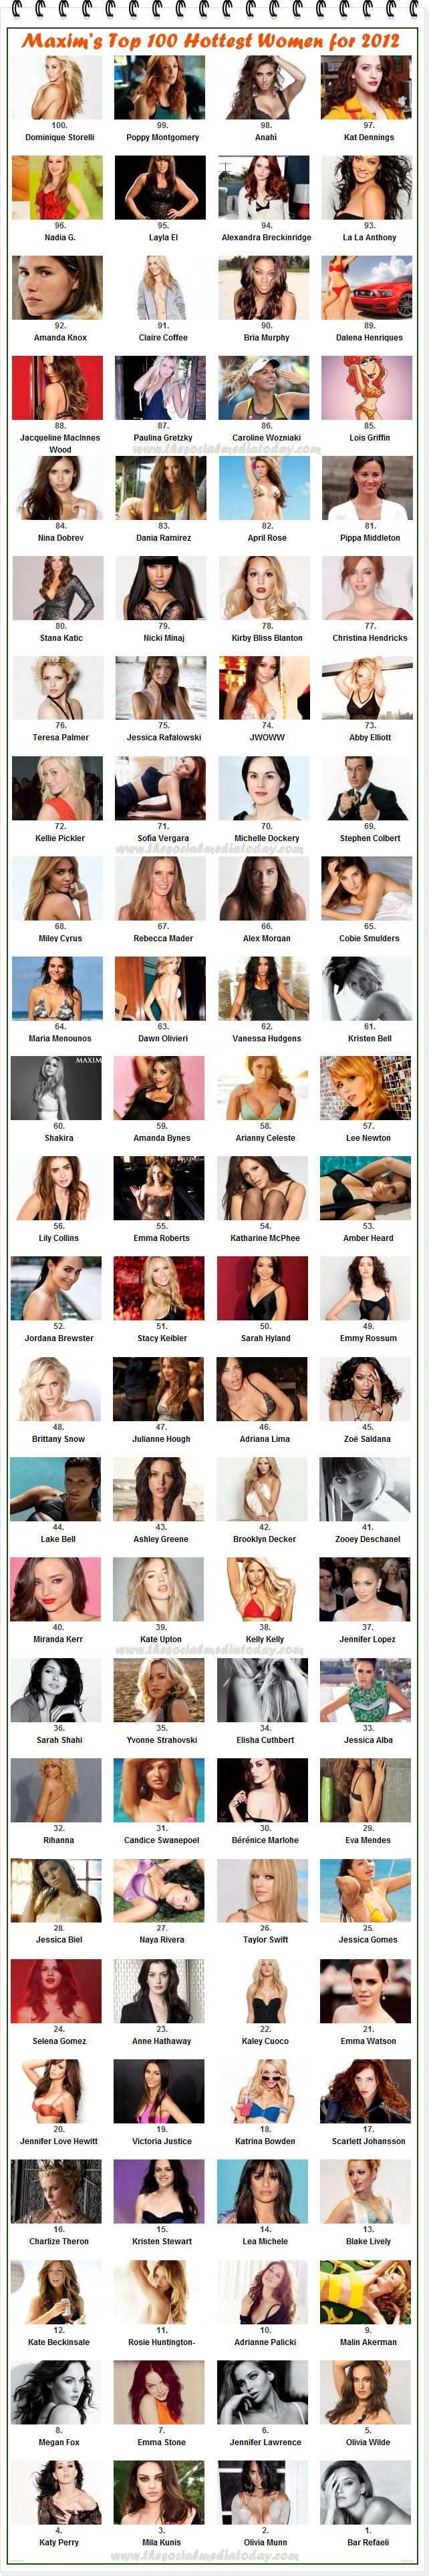 Pictures of Hottest Women for 2012